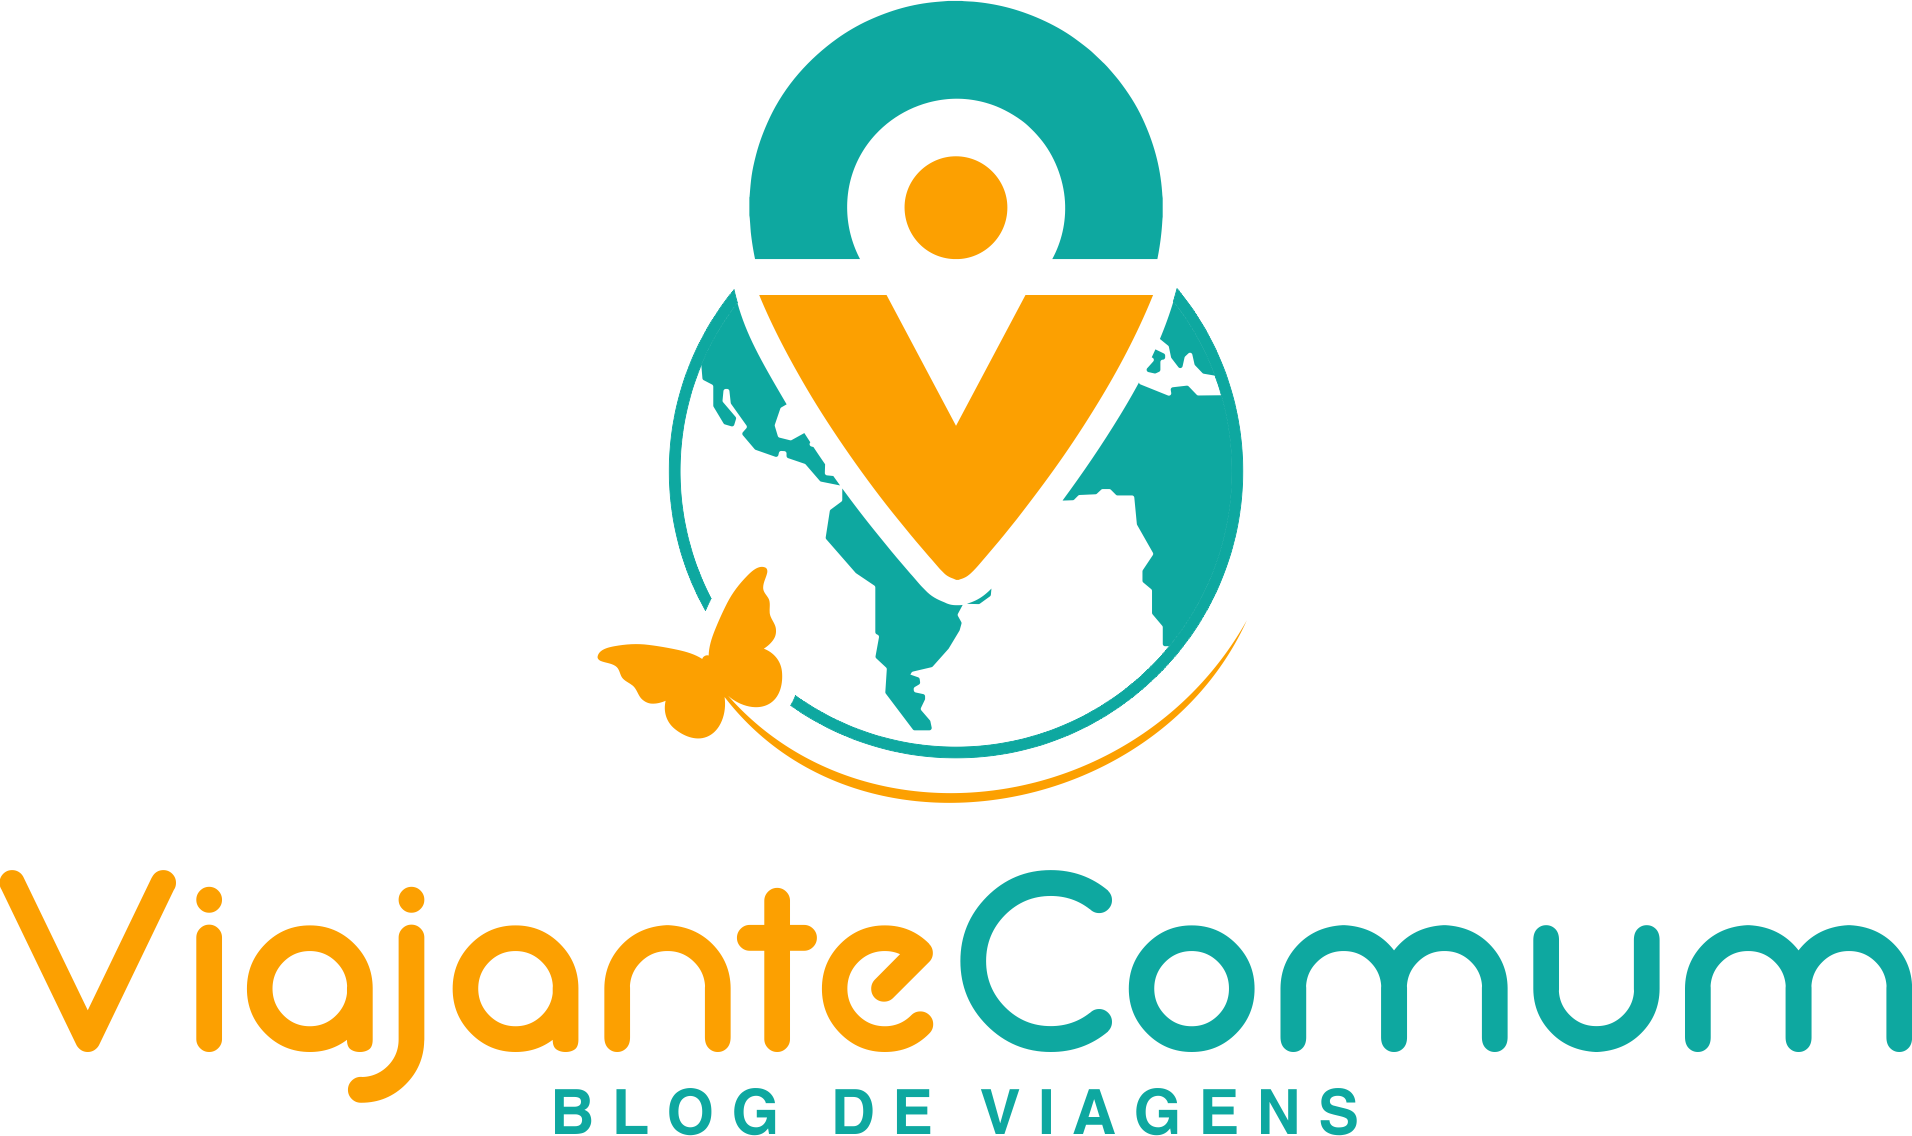 Viajante Comum